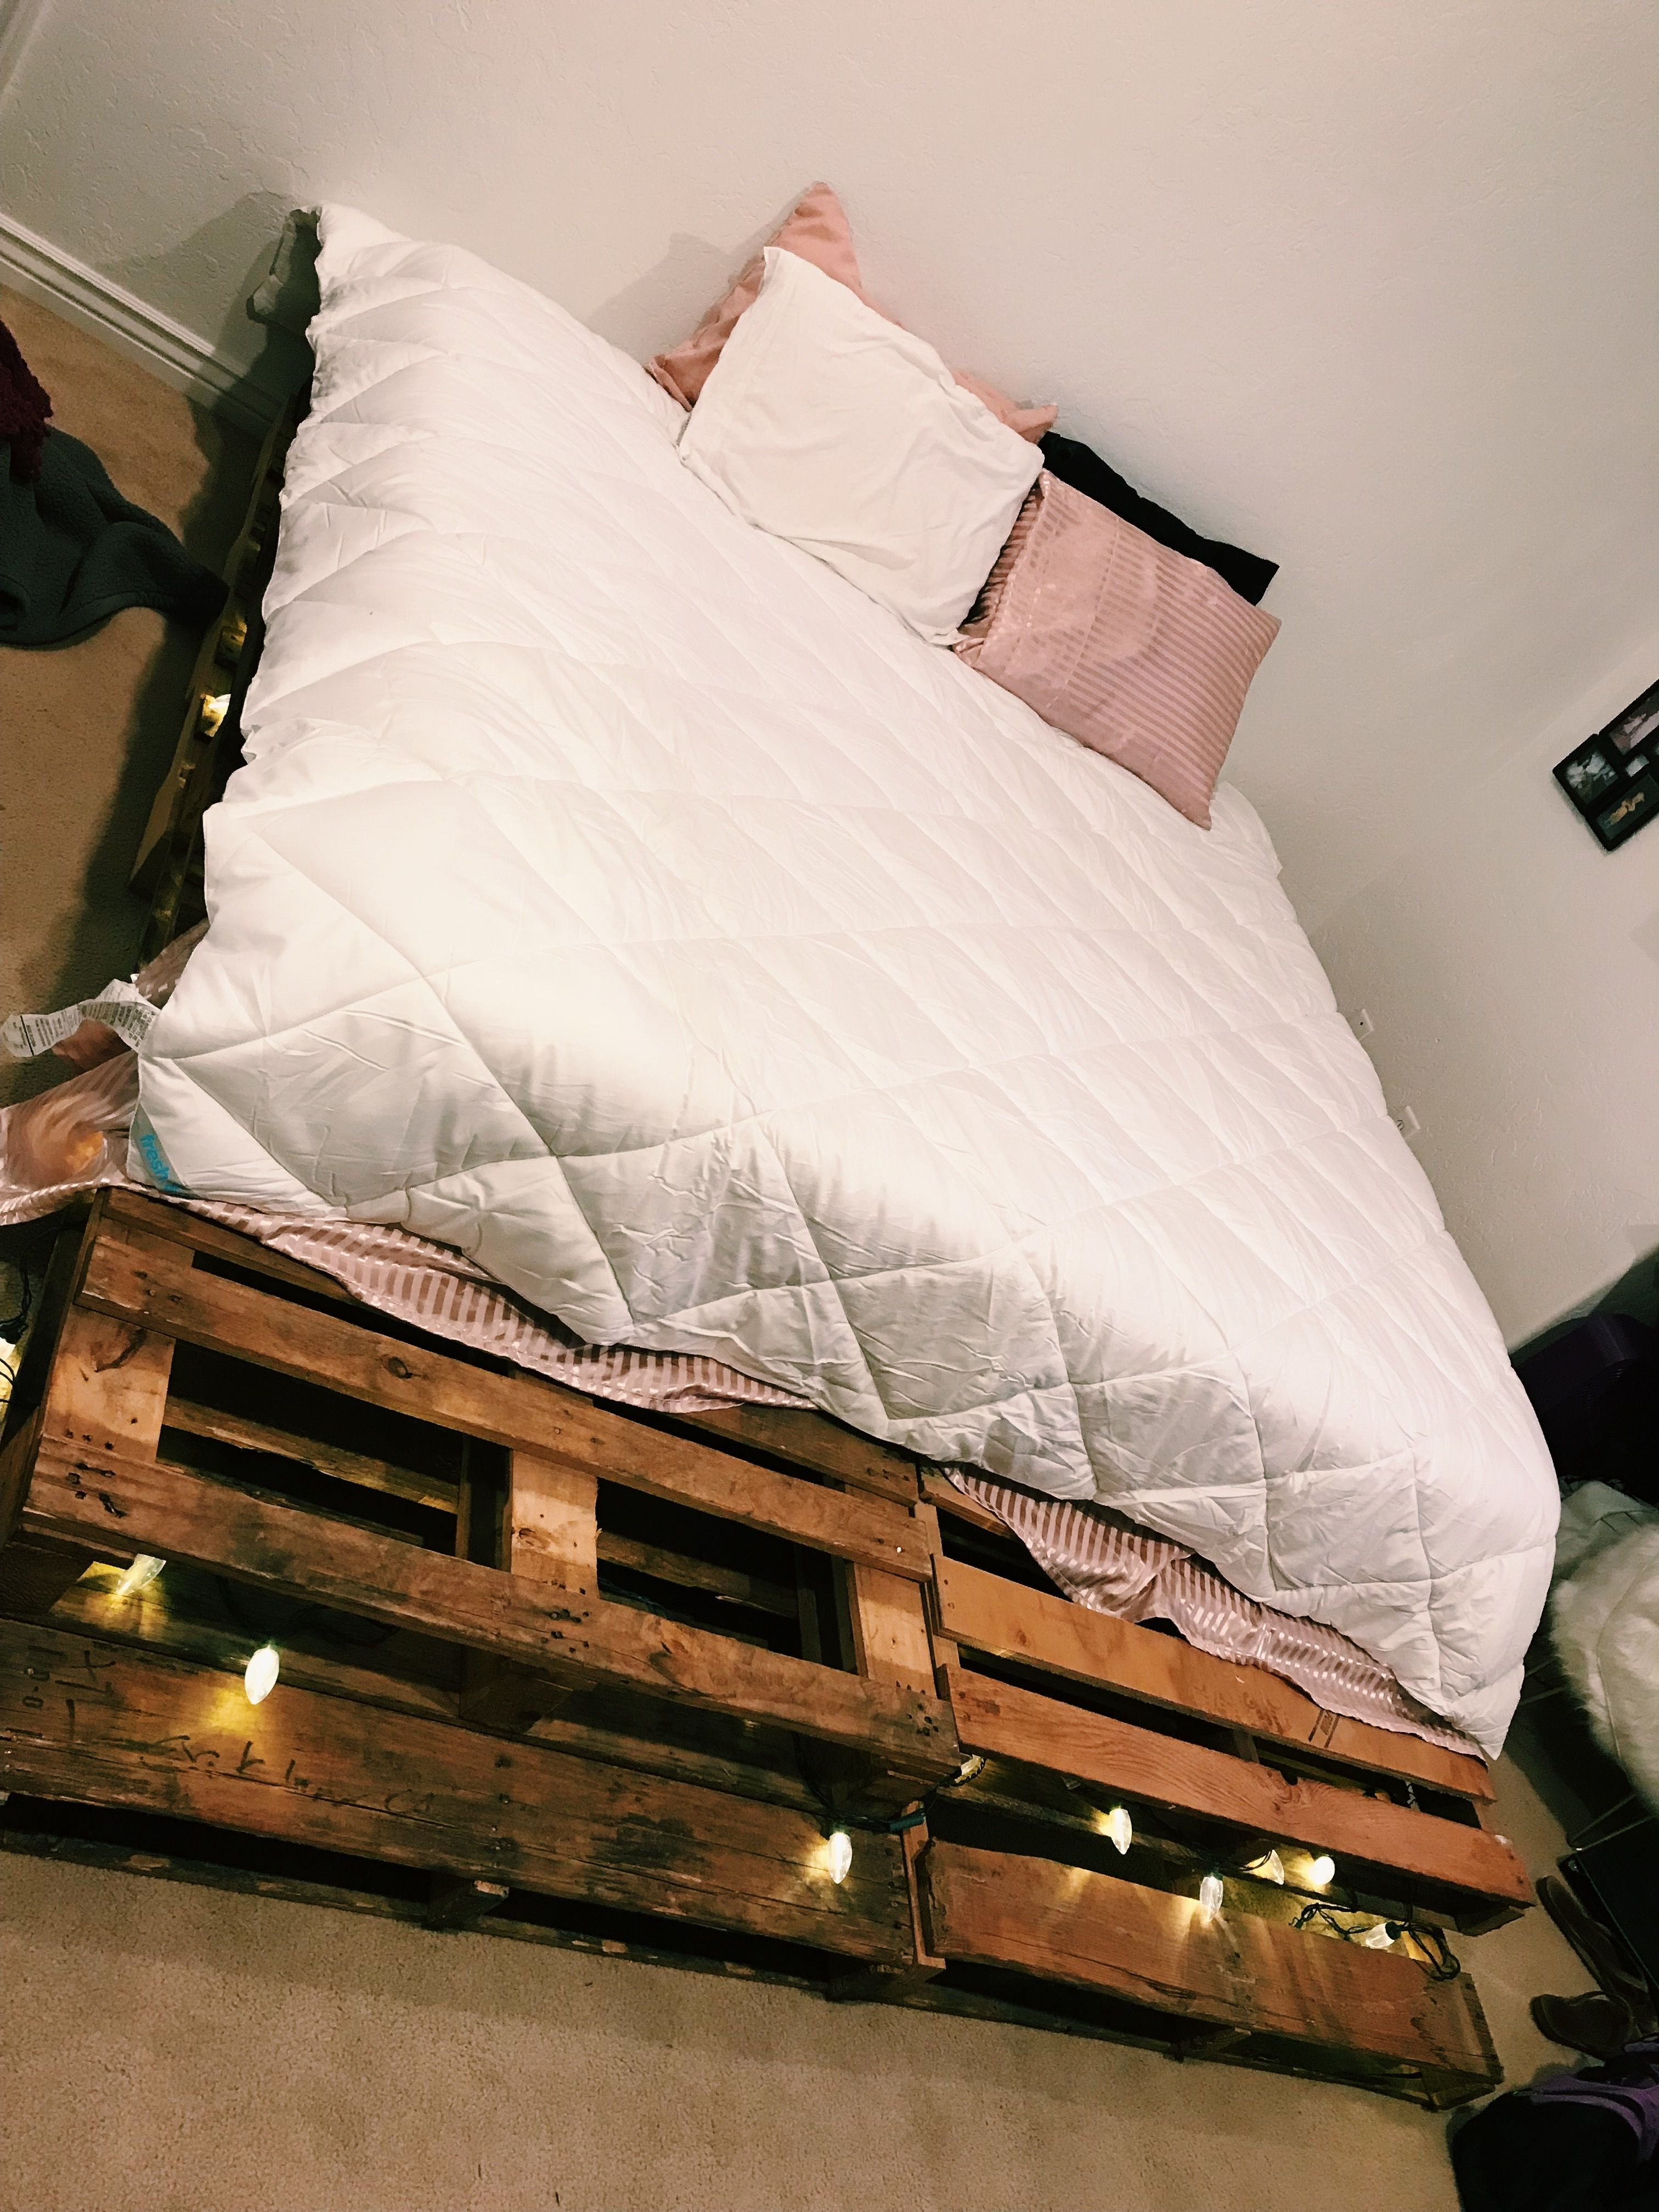 Find a local add on Craigslist that offers free pallets